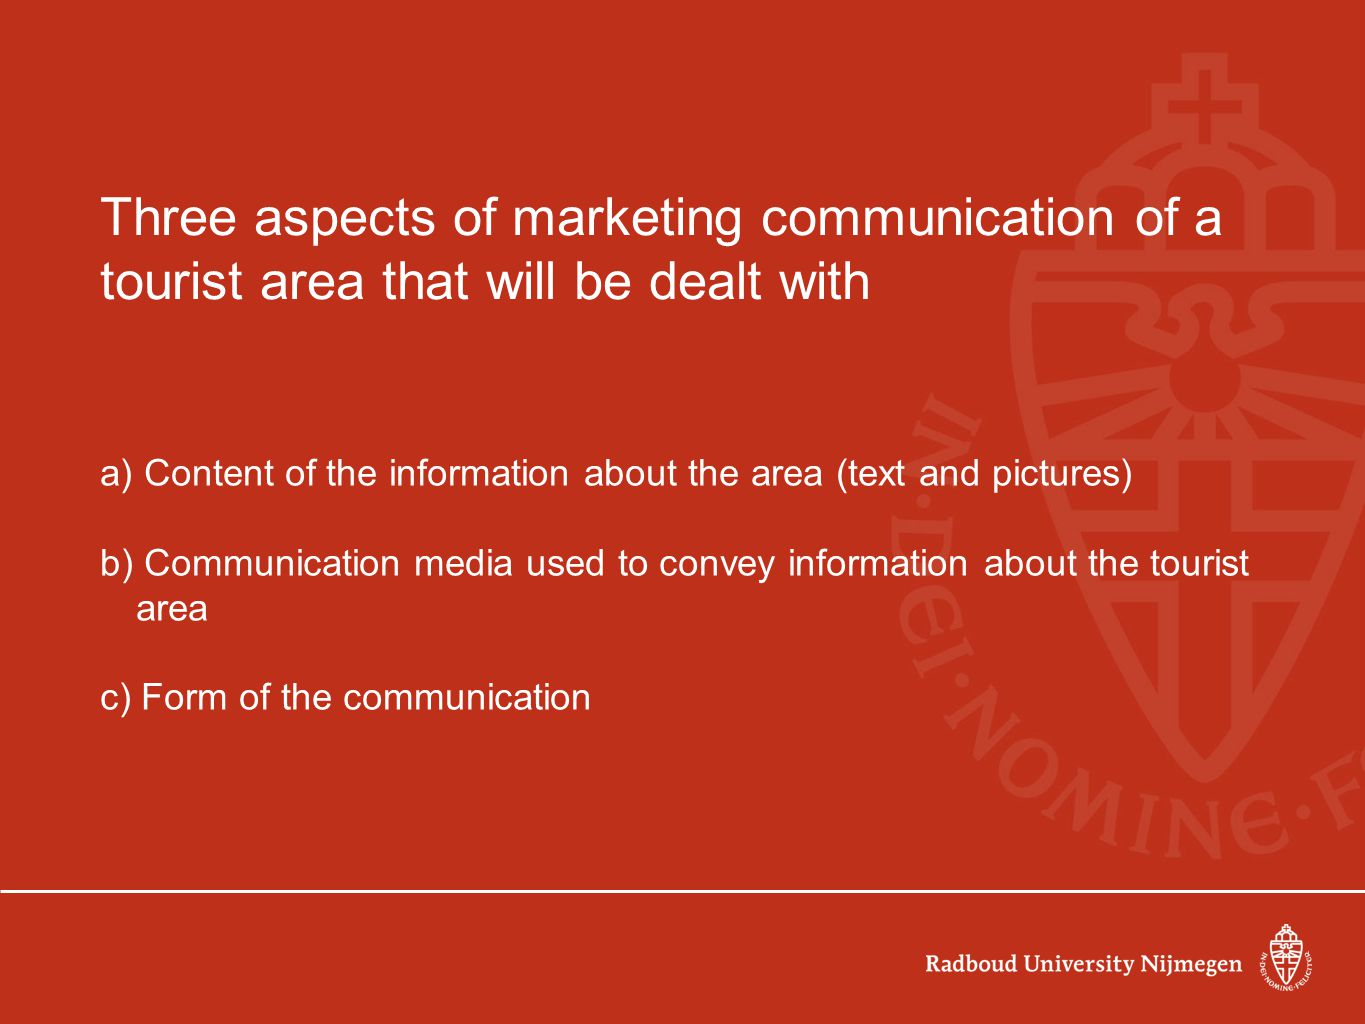 Three aspects of marketing communication of a tourist area that will be dealt with